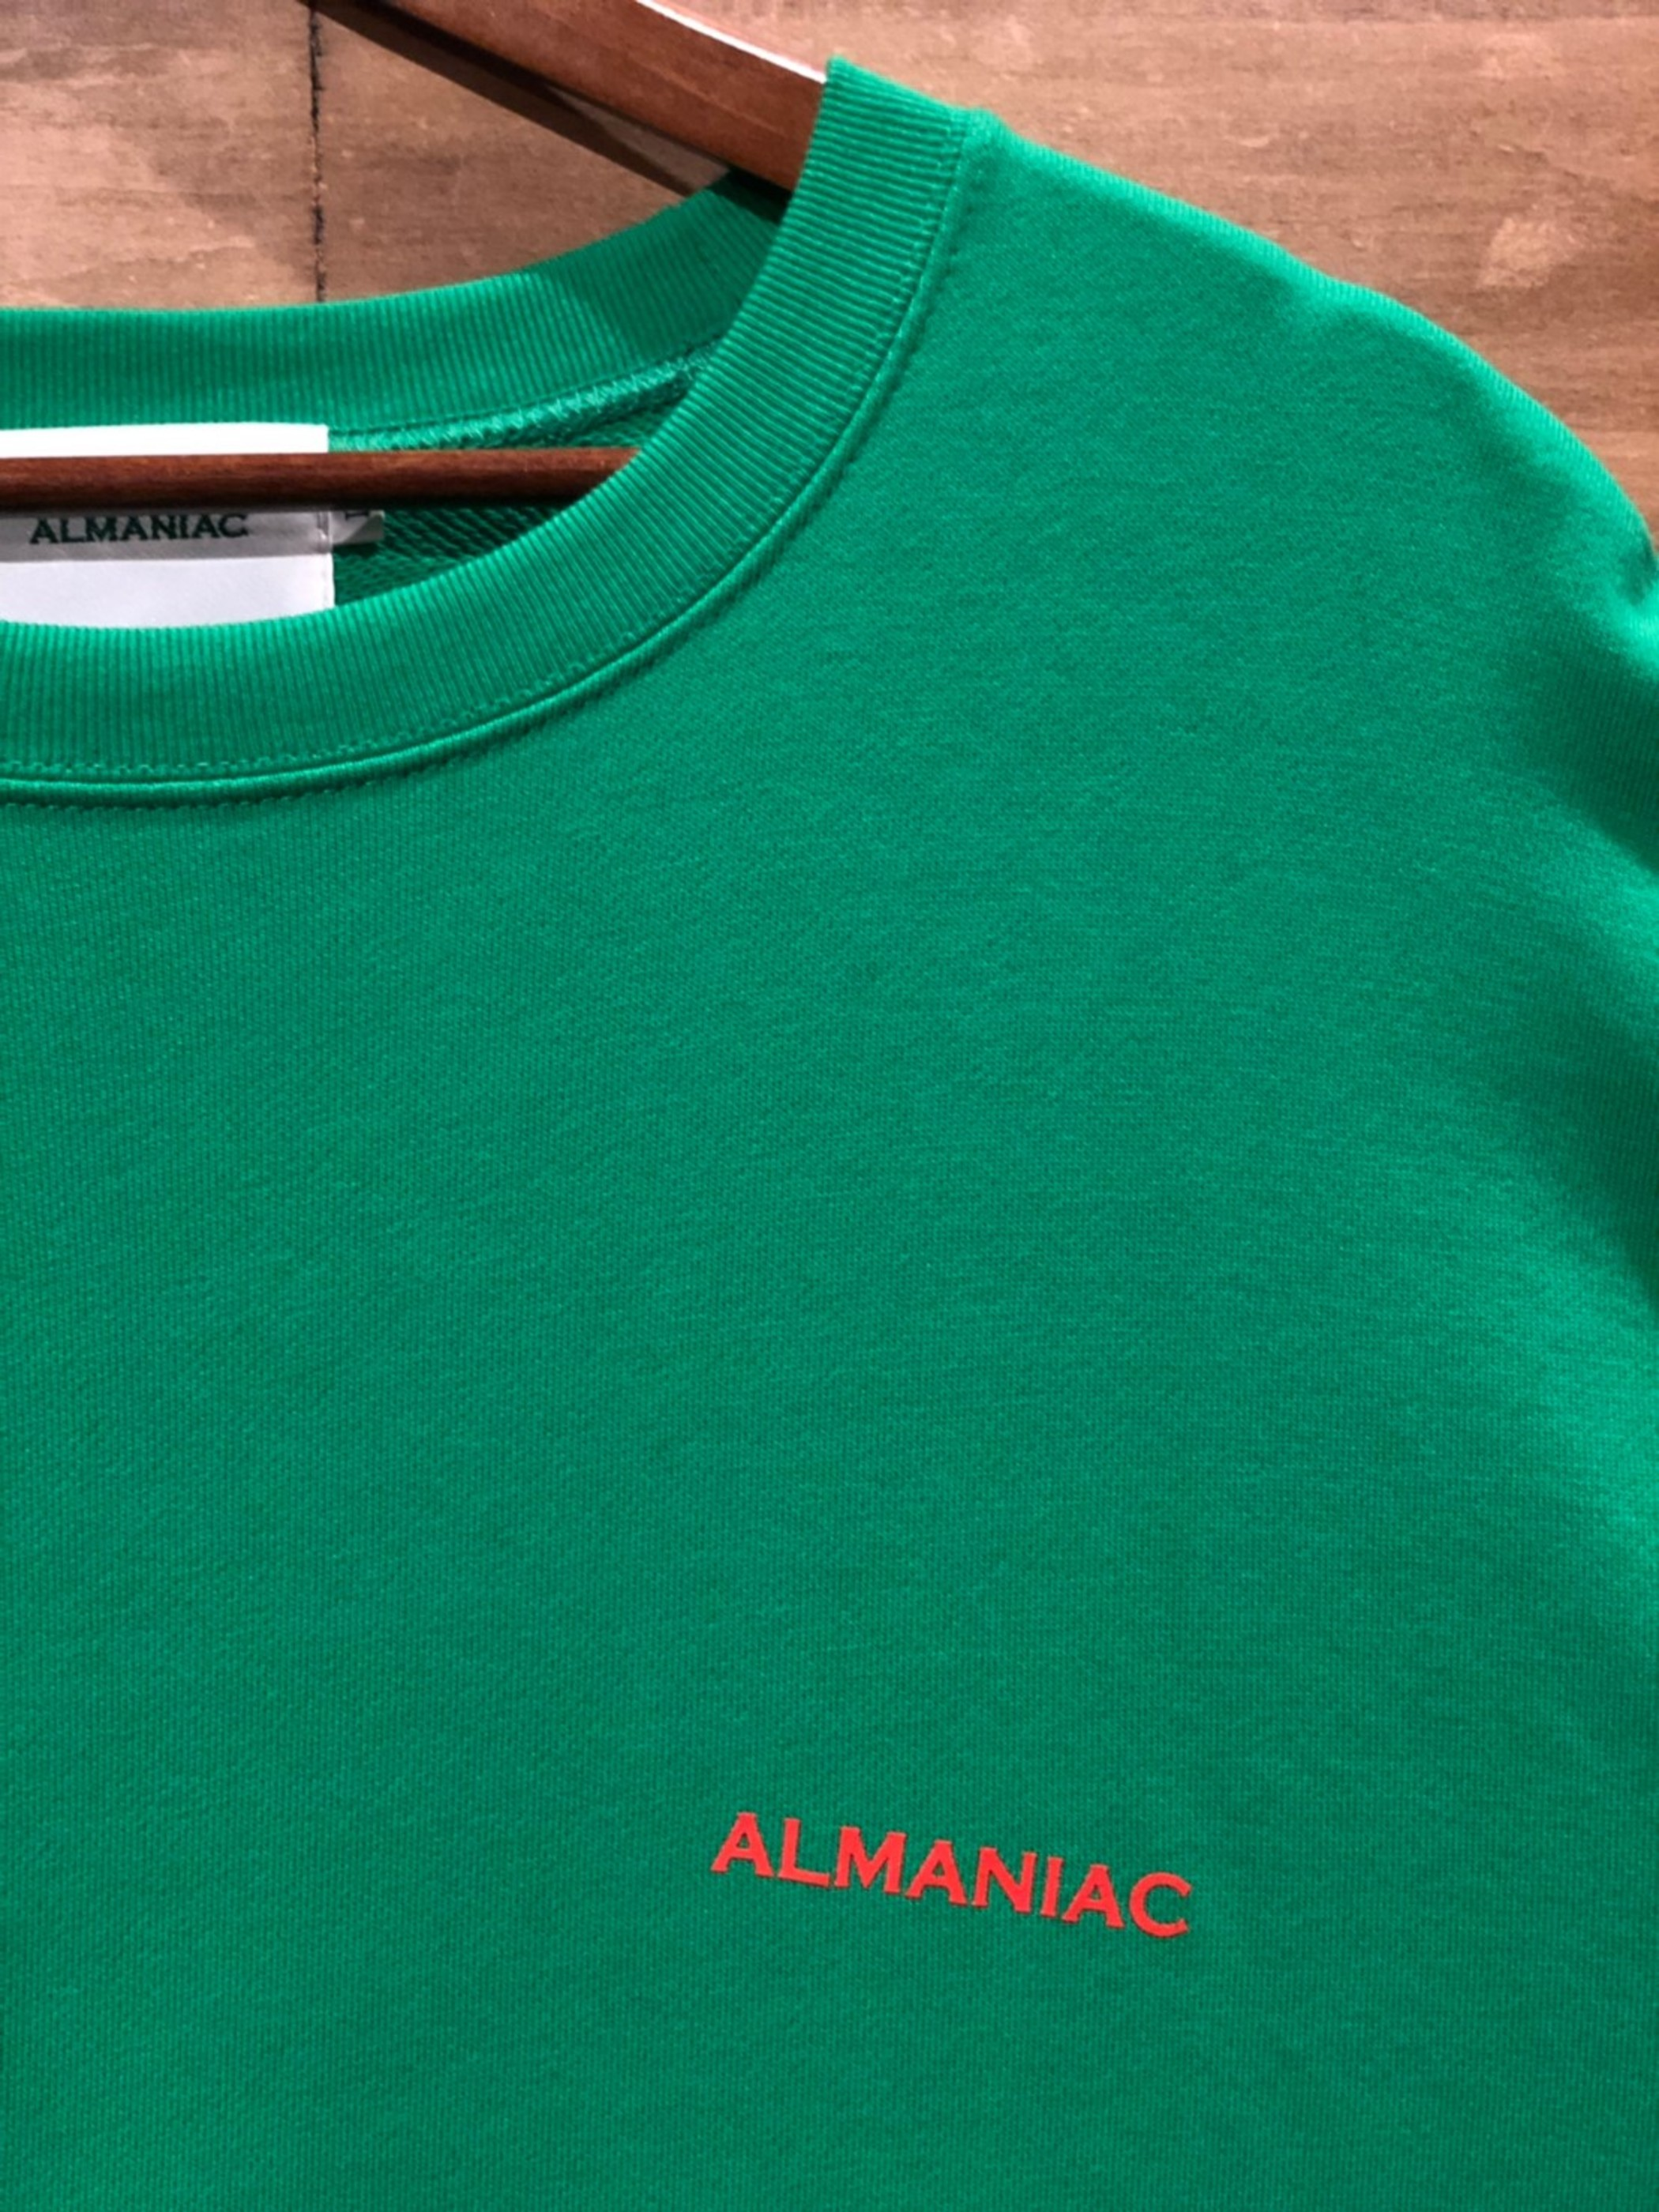 Sweat Shirt [M~XL] ALMANIAC / Flux Car